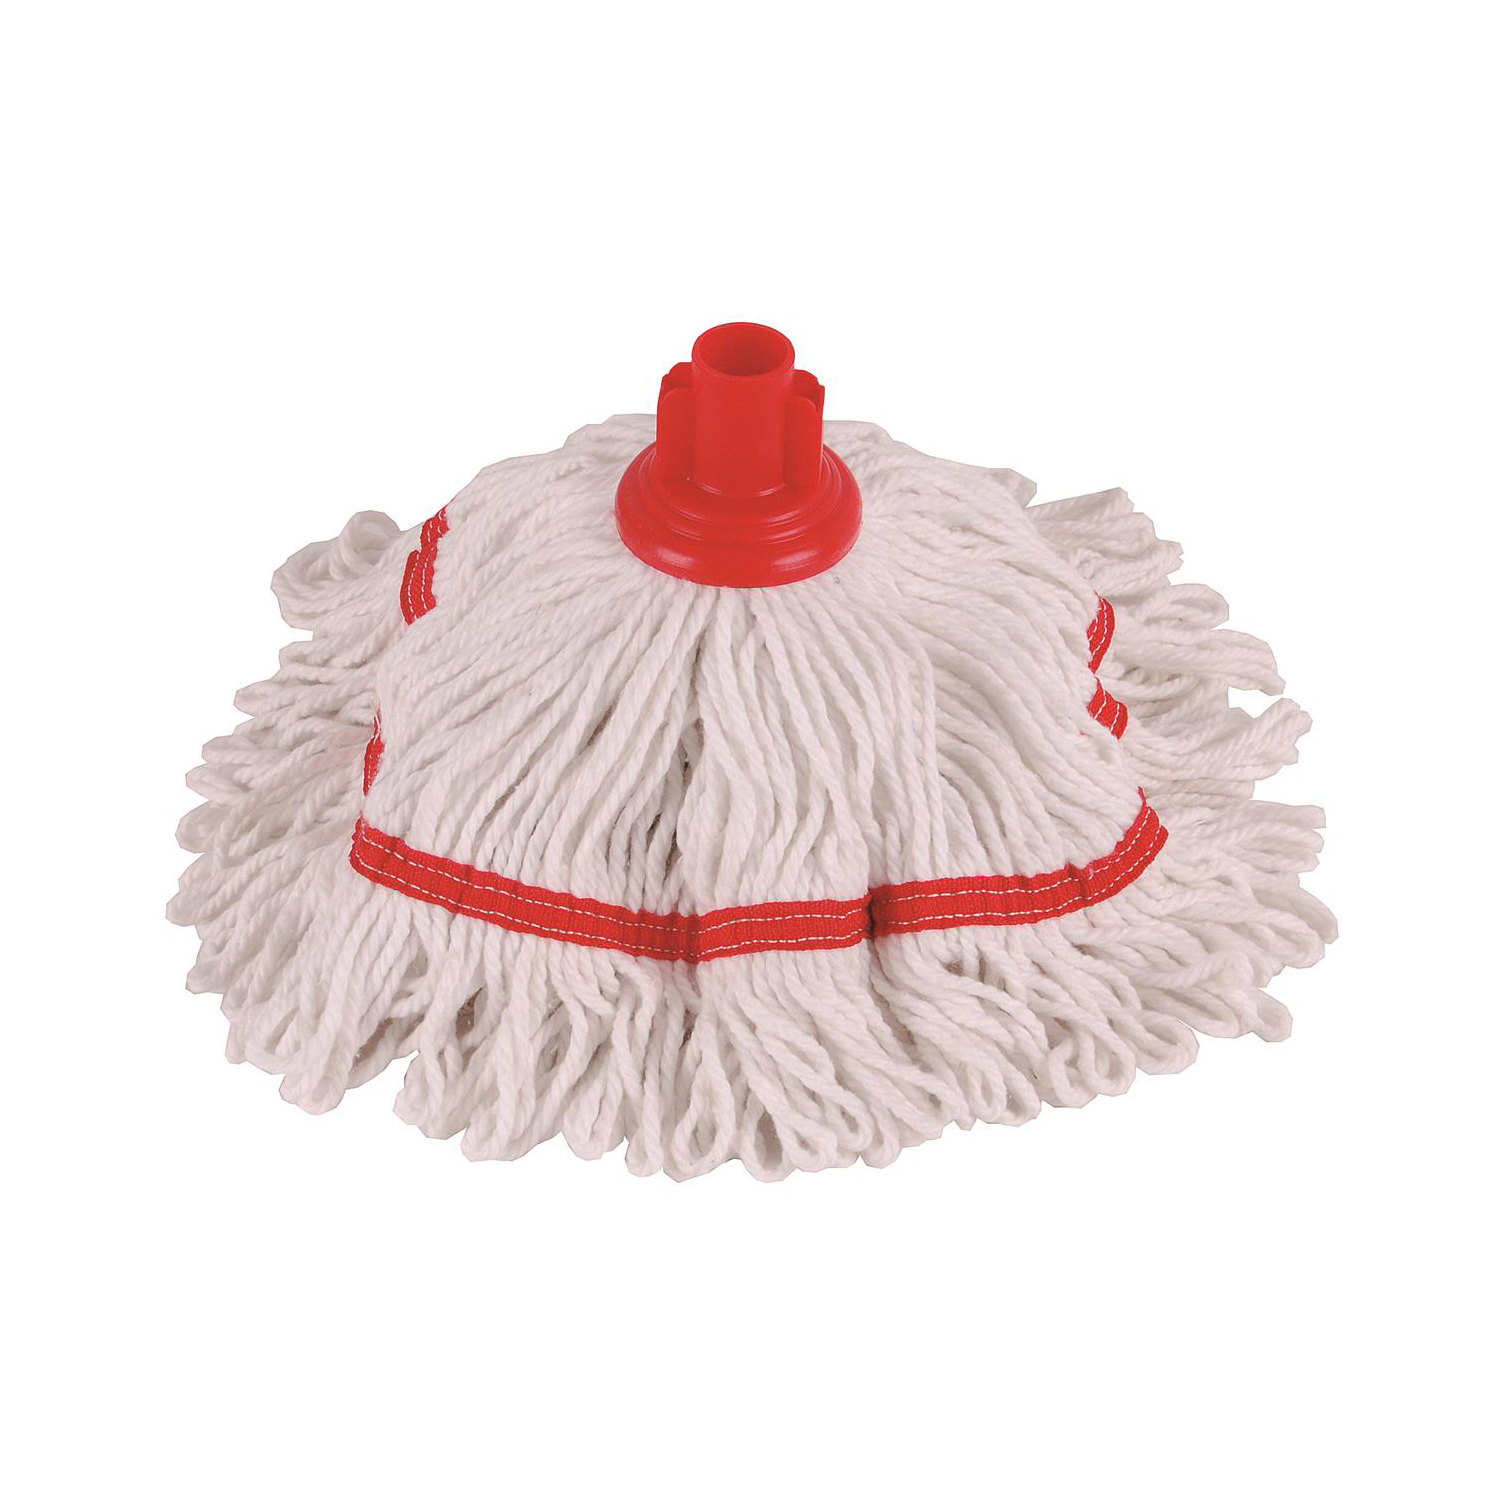 Mop heads Robert Scott & Sons Hygiemix T1 Socket Cotton & Synthetic Colour-coded Mop 250g Red Ref MHH250R